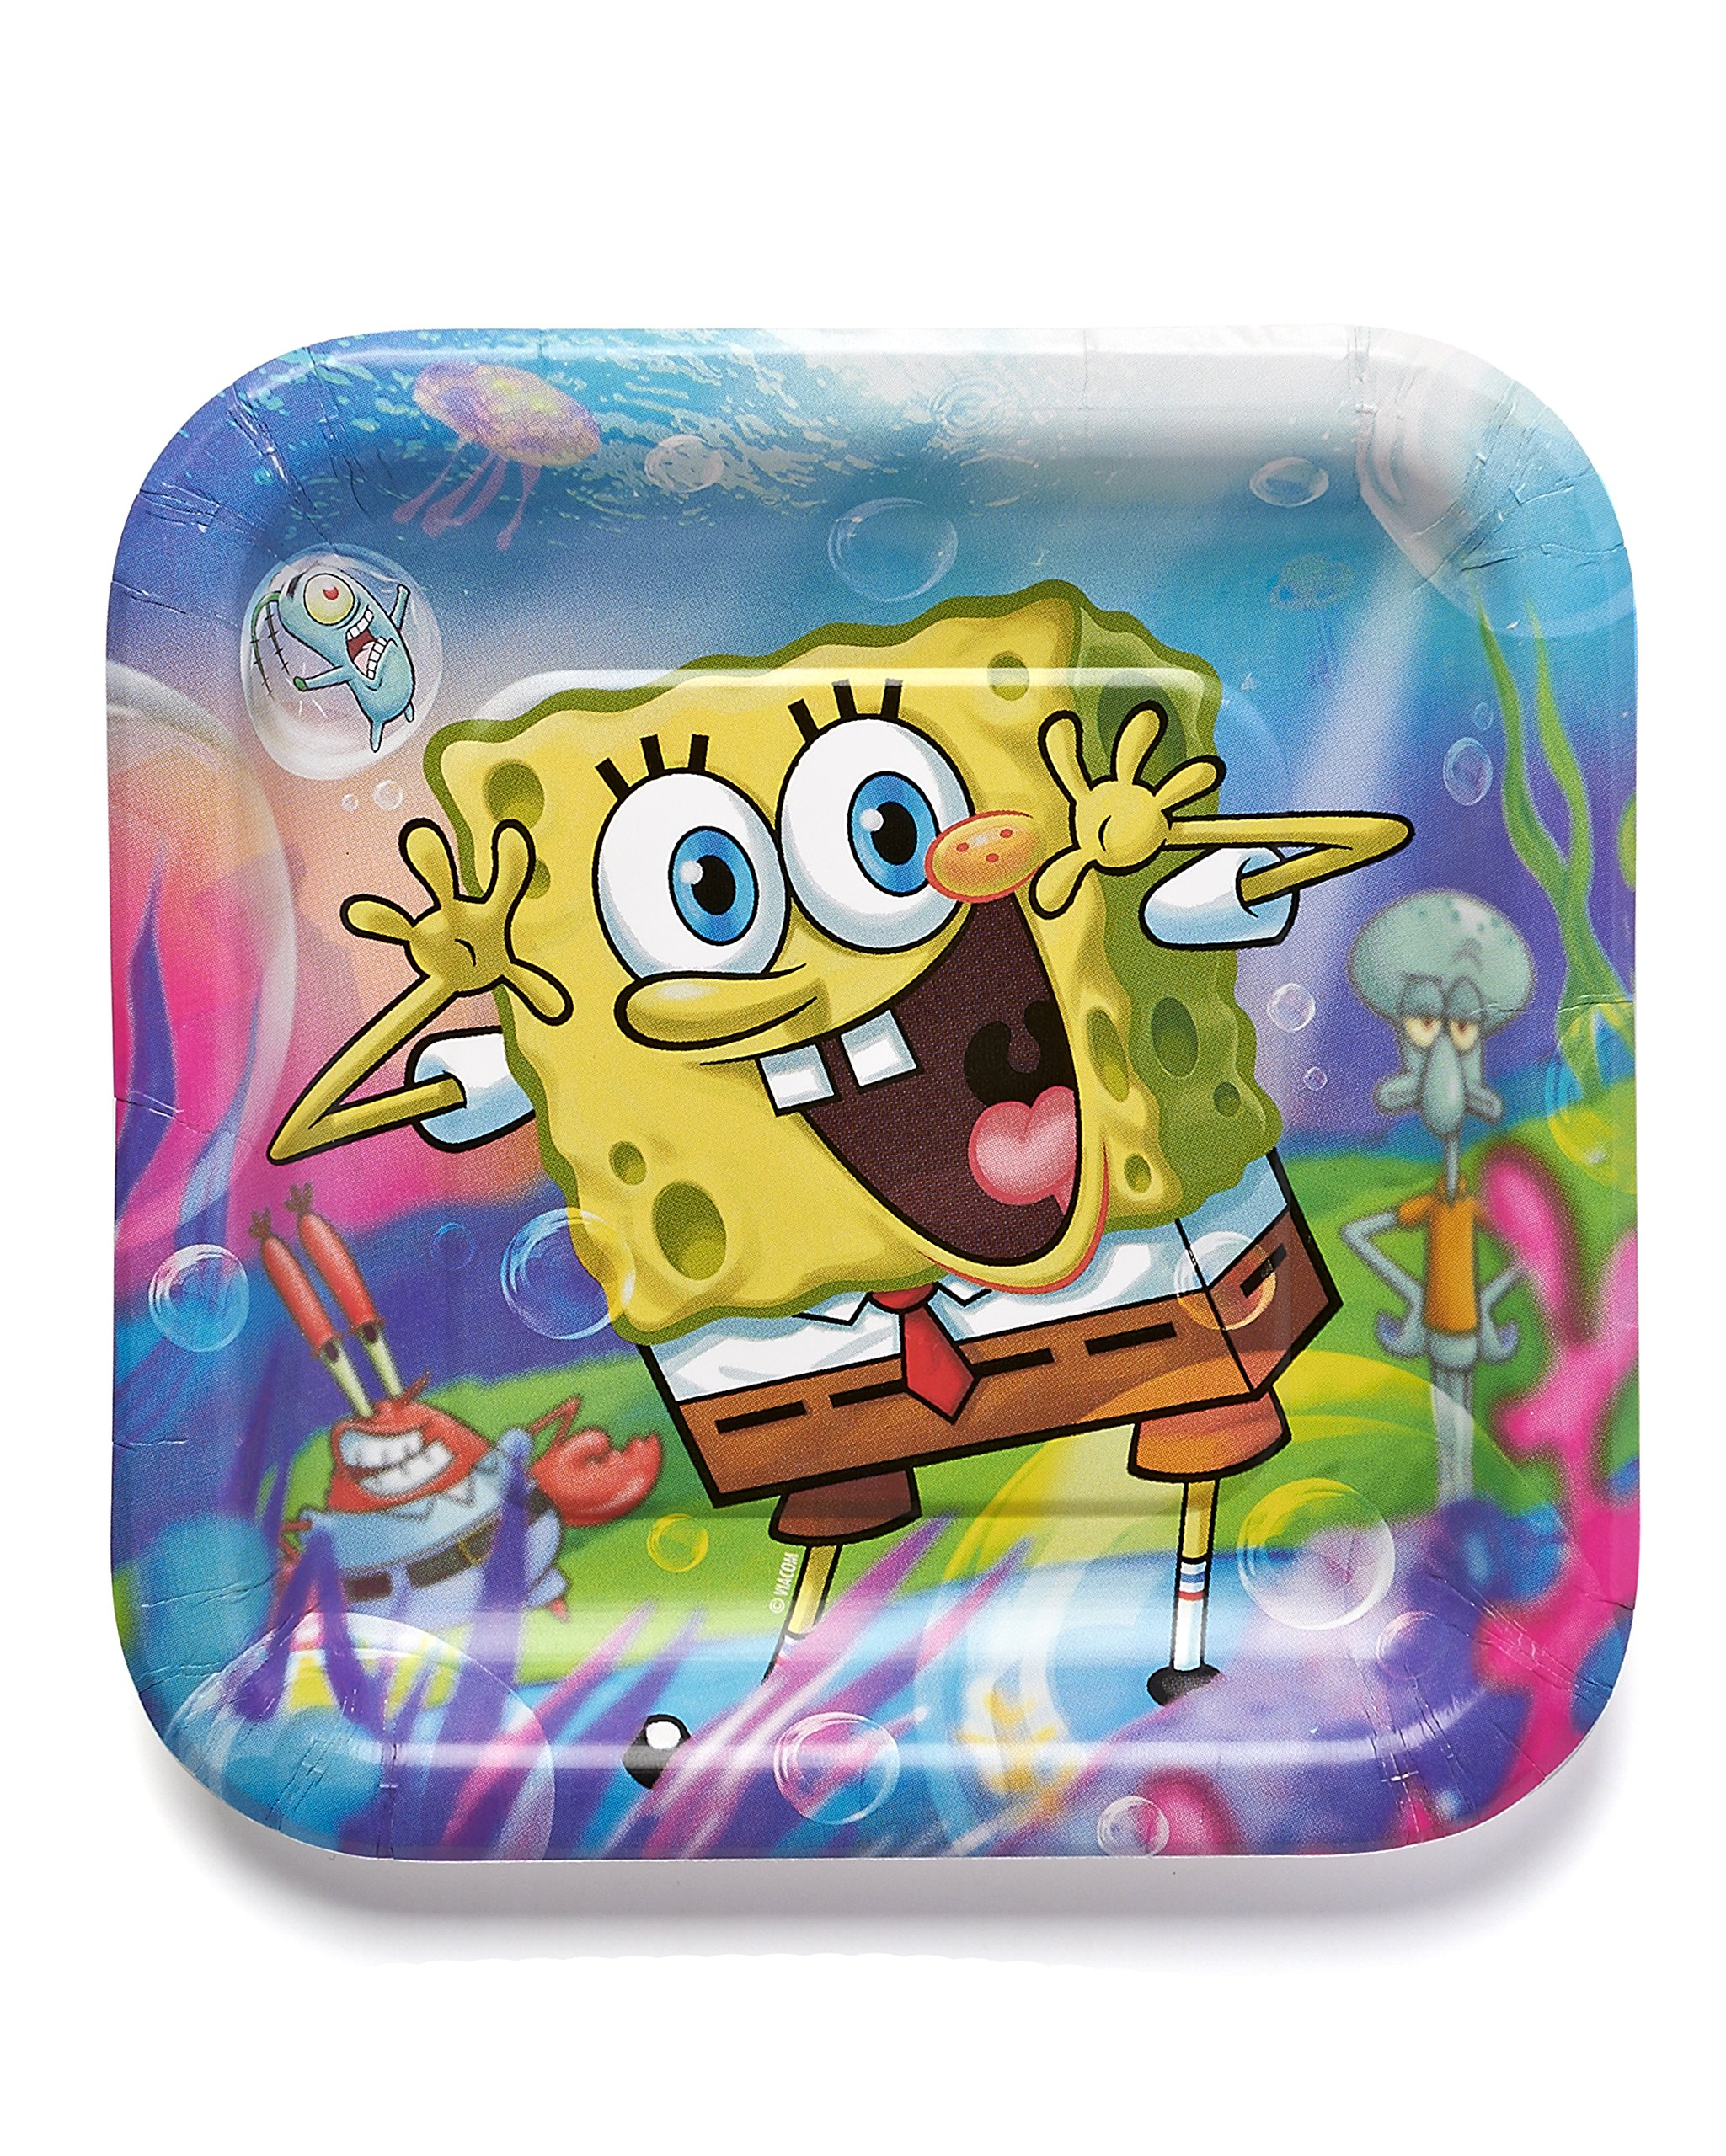 American Greetings 645416369763 SpongeBob SquarePants 7 Square Plate Party Supplies Novelty 8